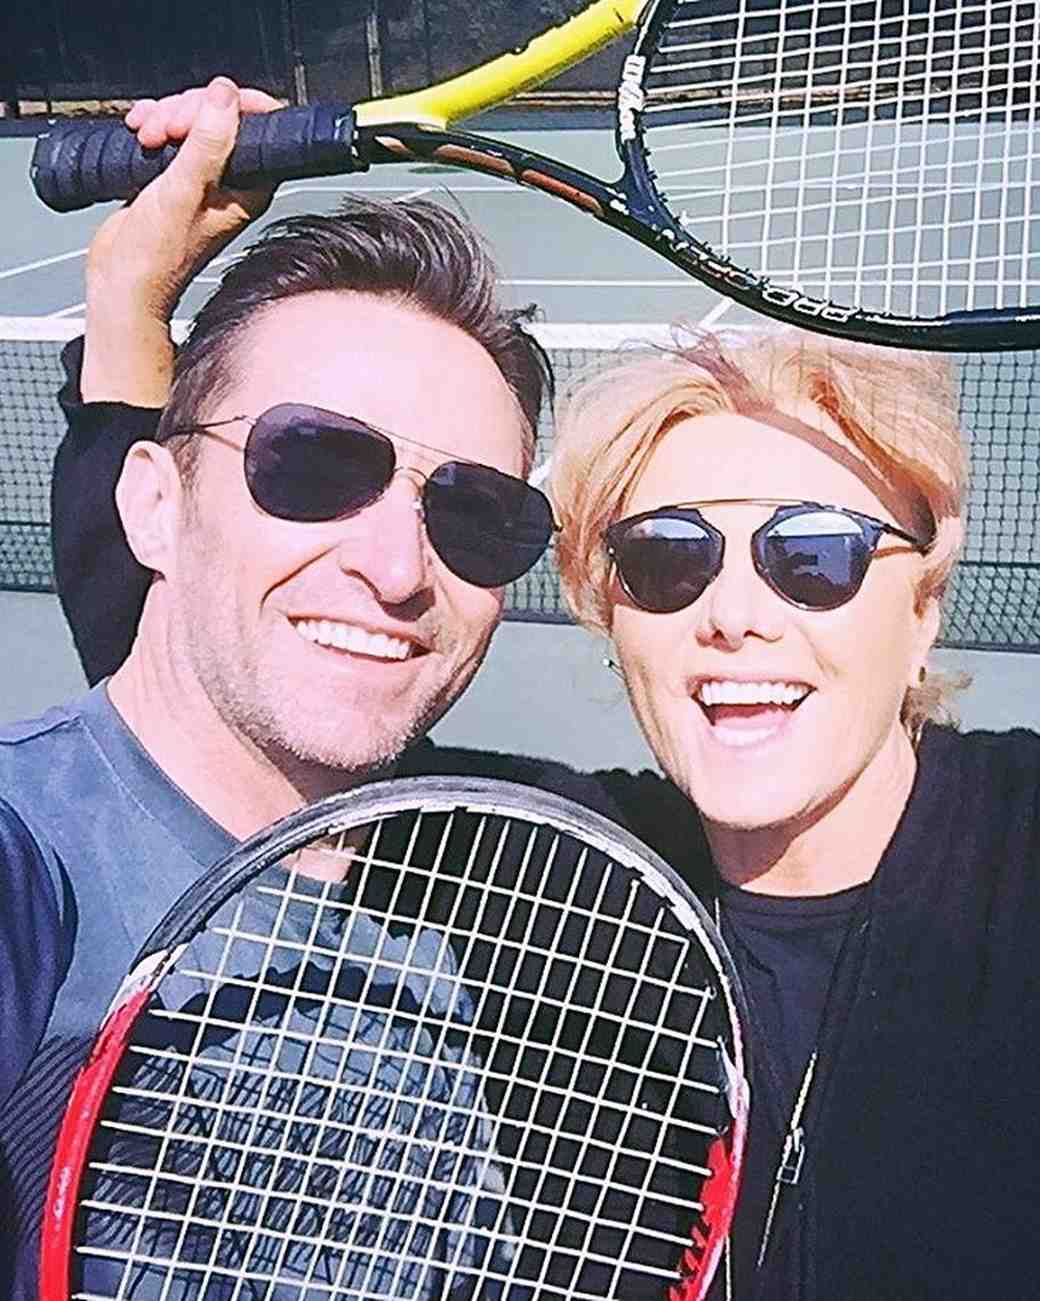 Hugh Jackman and wife Deborra-Lee Furness celebrate their 21st anniversary with a tennis match